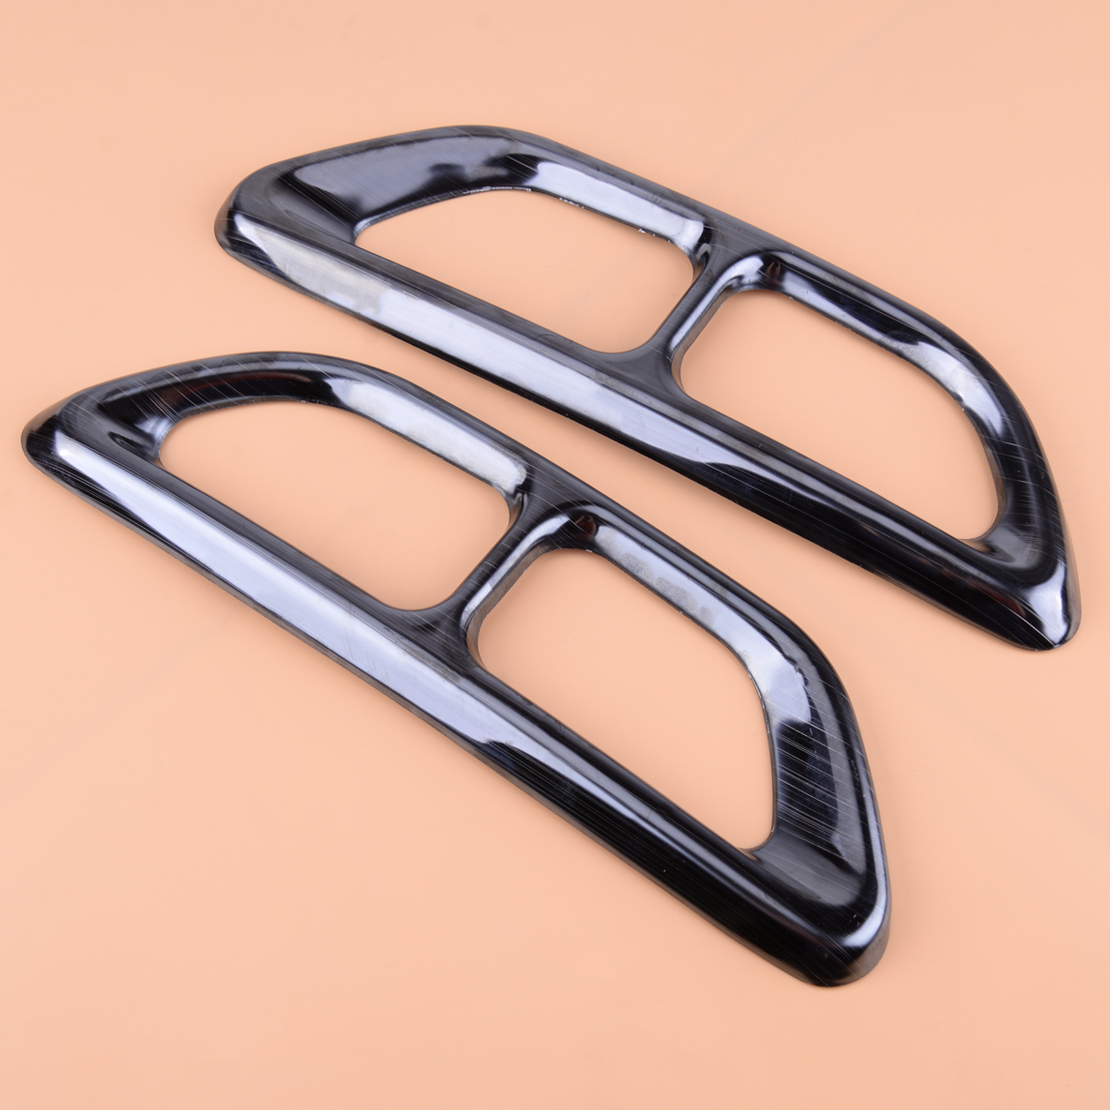 beler Metal Black Titanium Mufflers Rear Cylinder Exhaust Pipe Tip End Cover Trim Fit For Honda Accord 2018 Chromium Car styling|Chromium Styling| |  - title=